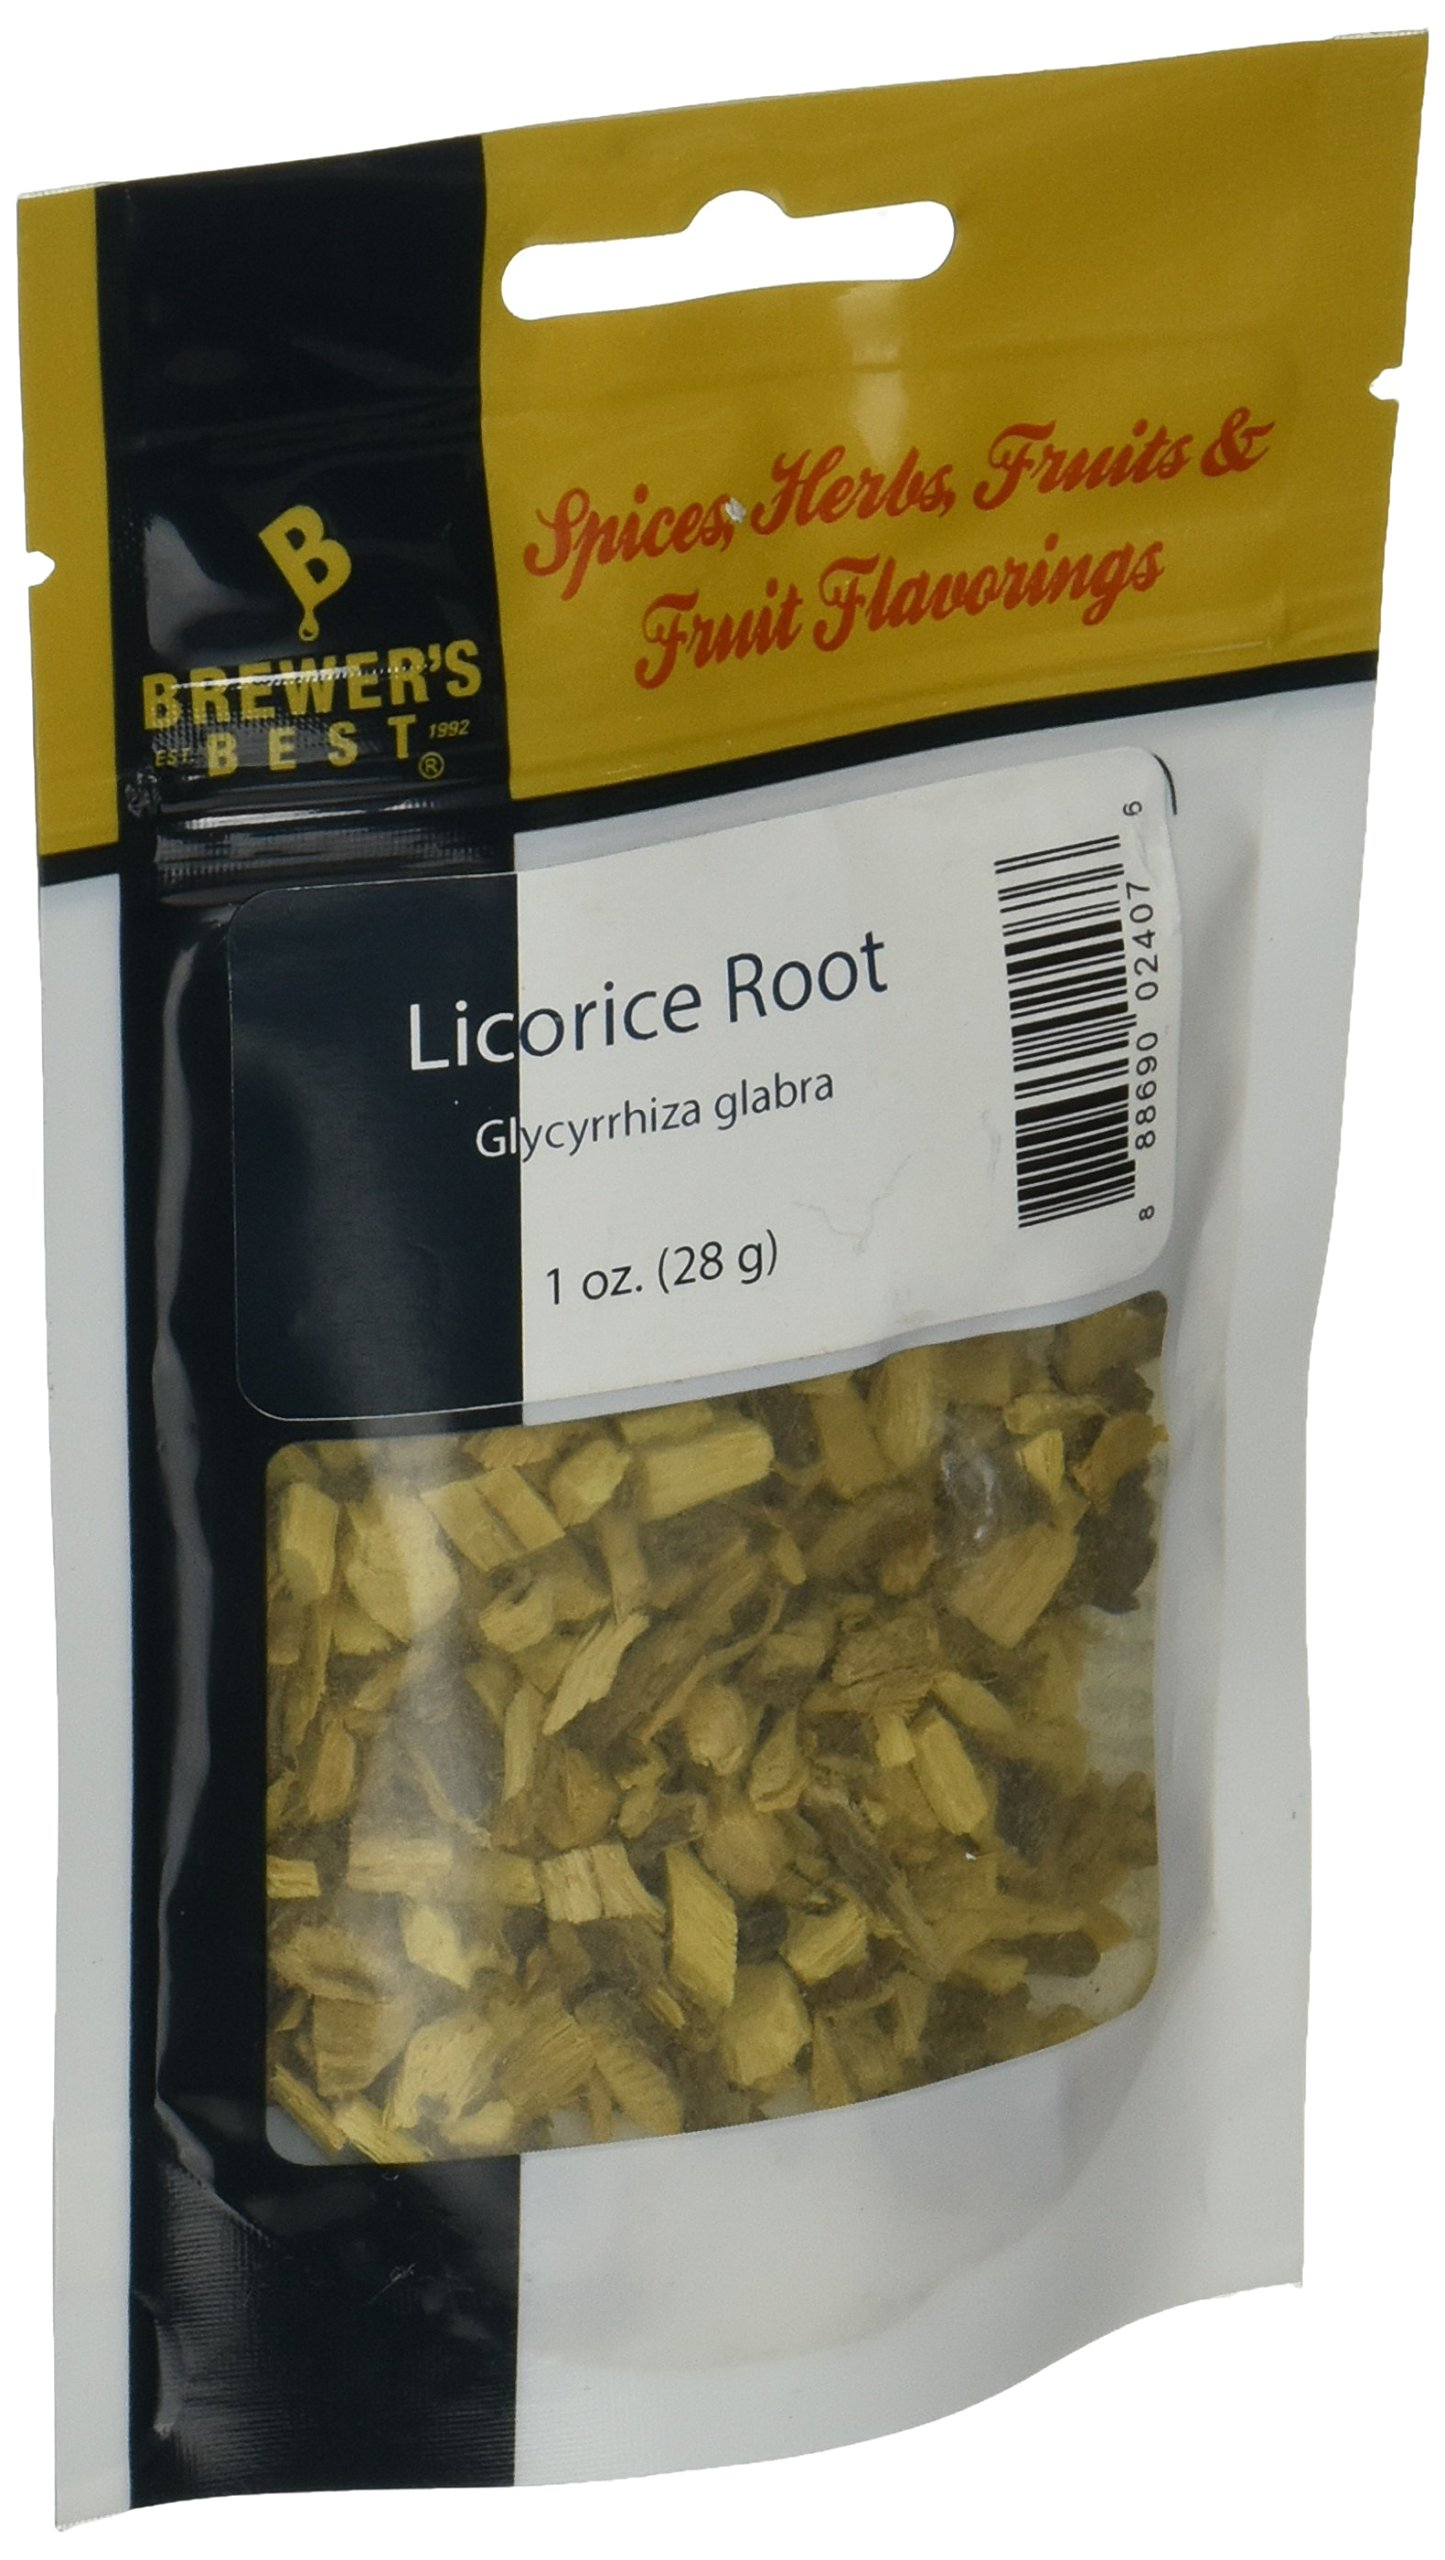 Brewer's Best Brewing Herbs and Spices - Licorice Root